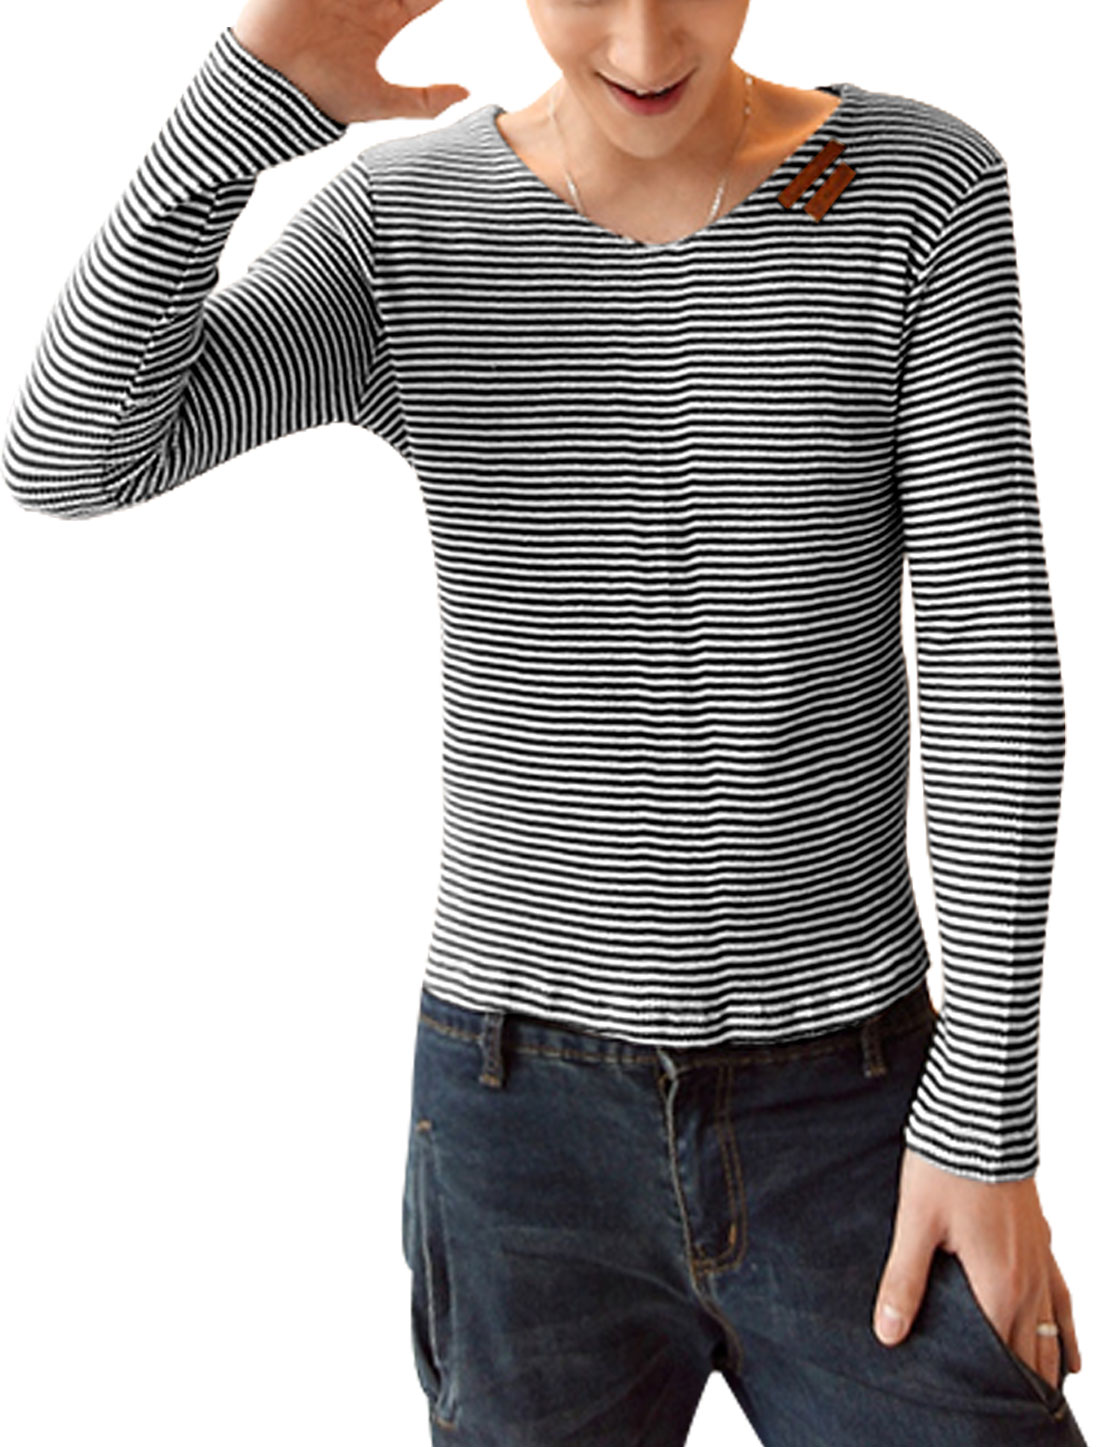 Men Imitation Leather Decor Stripes Stretchy Top Shirt Black White S